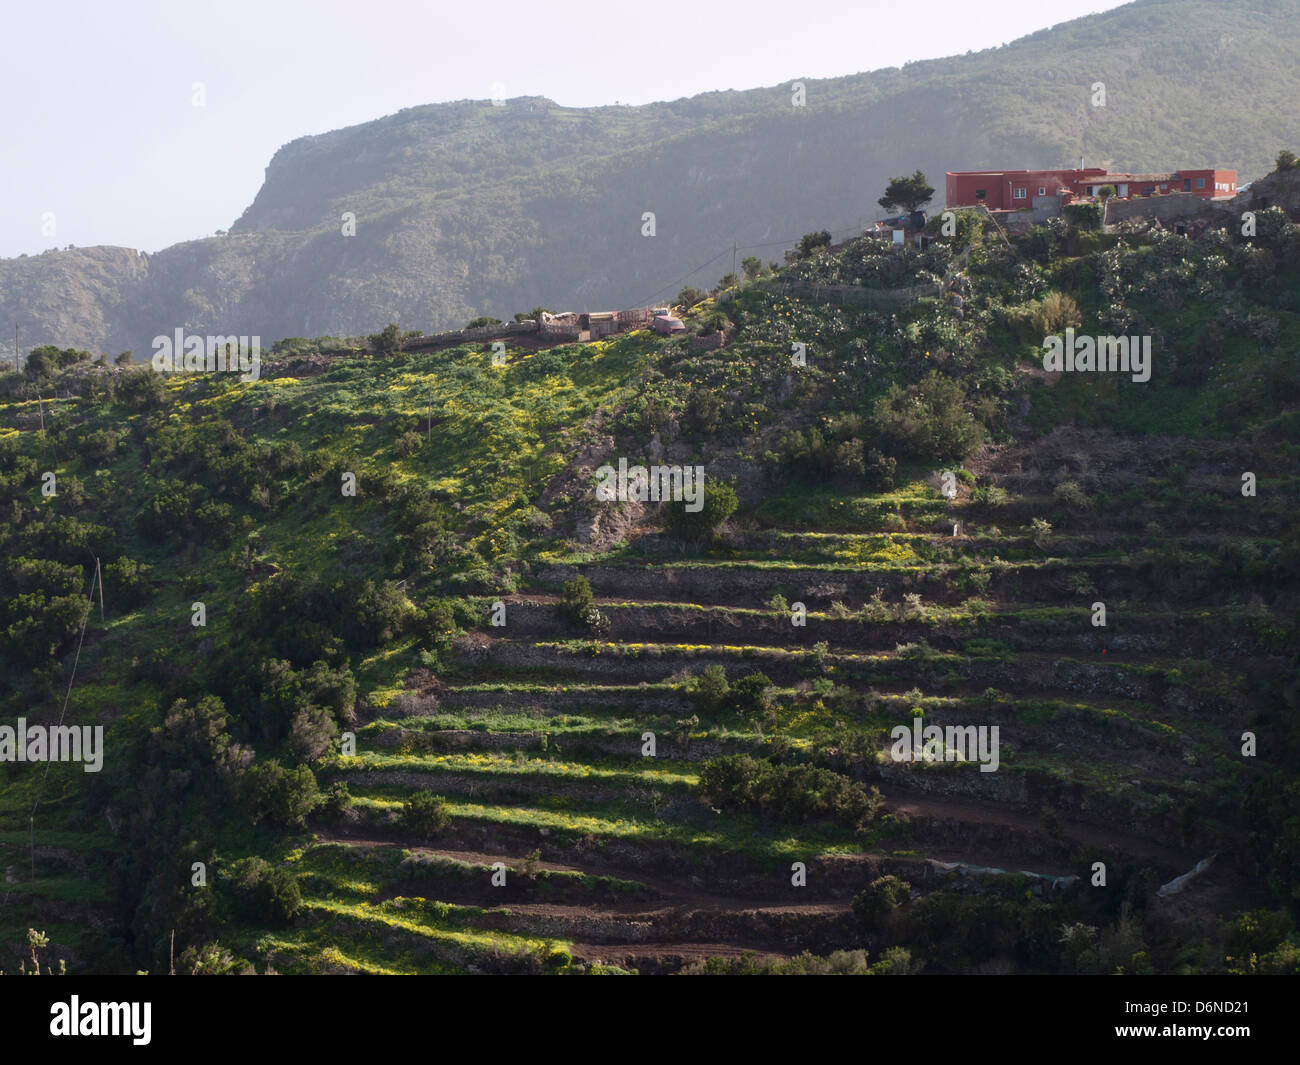 Terraced farm fields with farmhouses on top of a steep ridge, Teno Alto mountains in Tenerife Canary Islands Spain - Stock Image